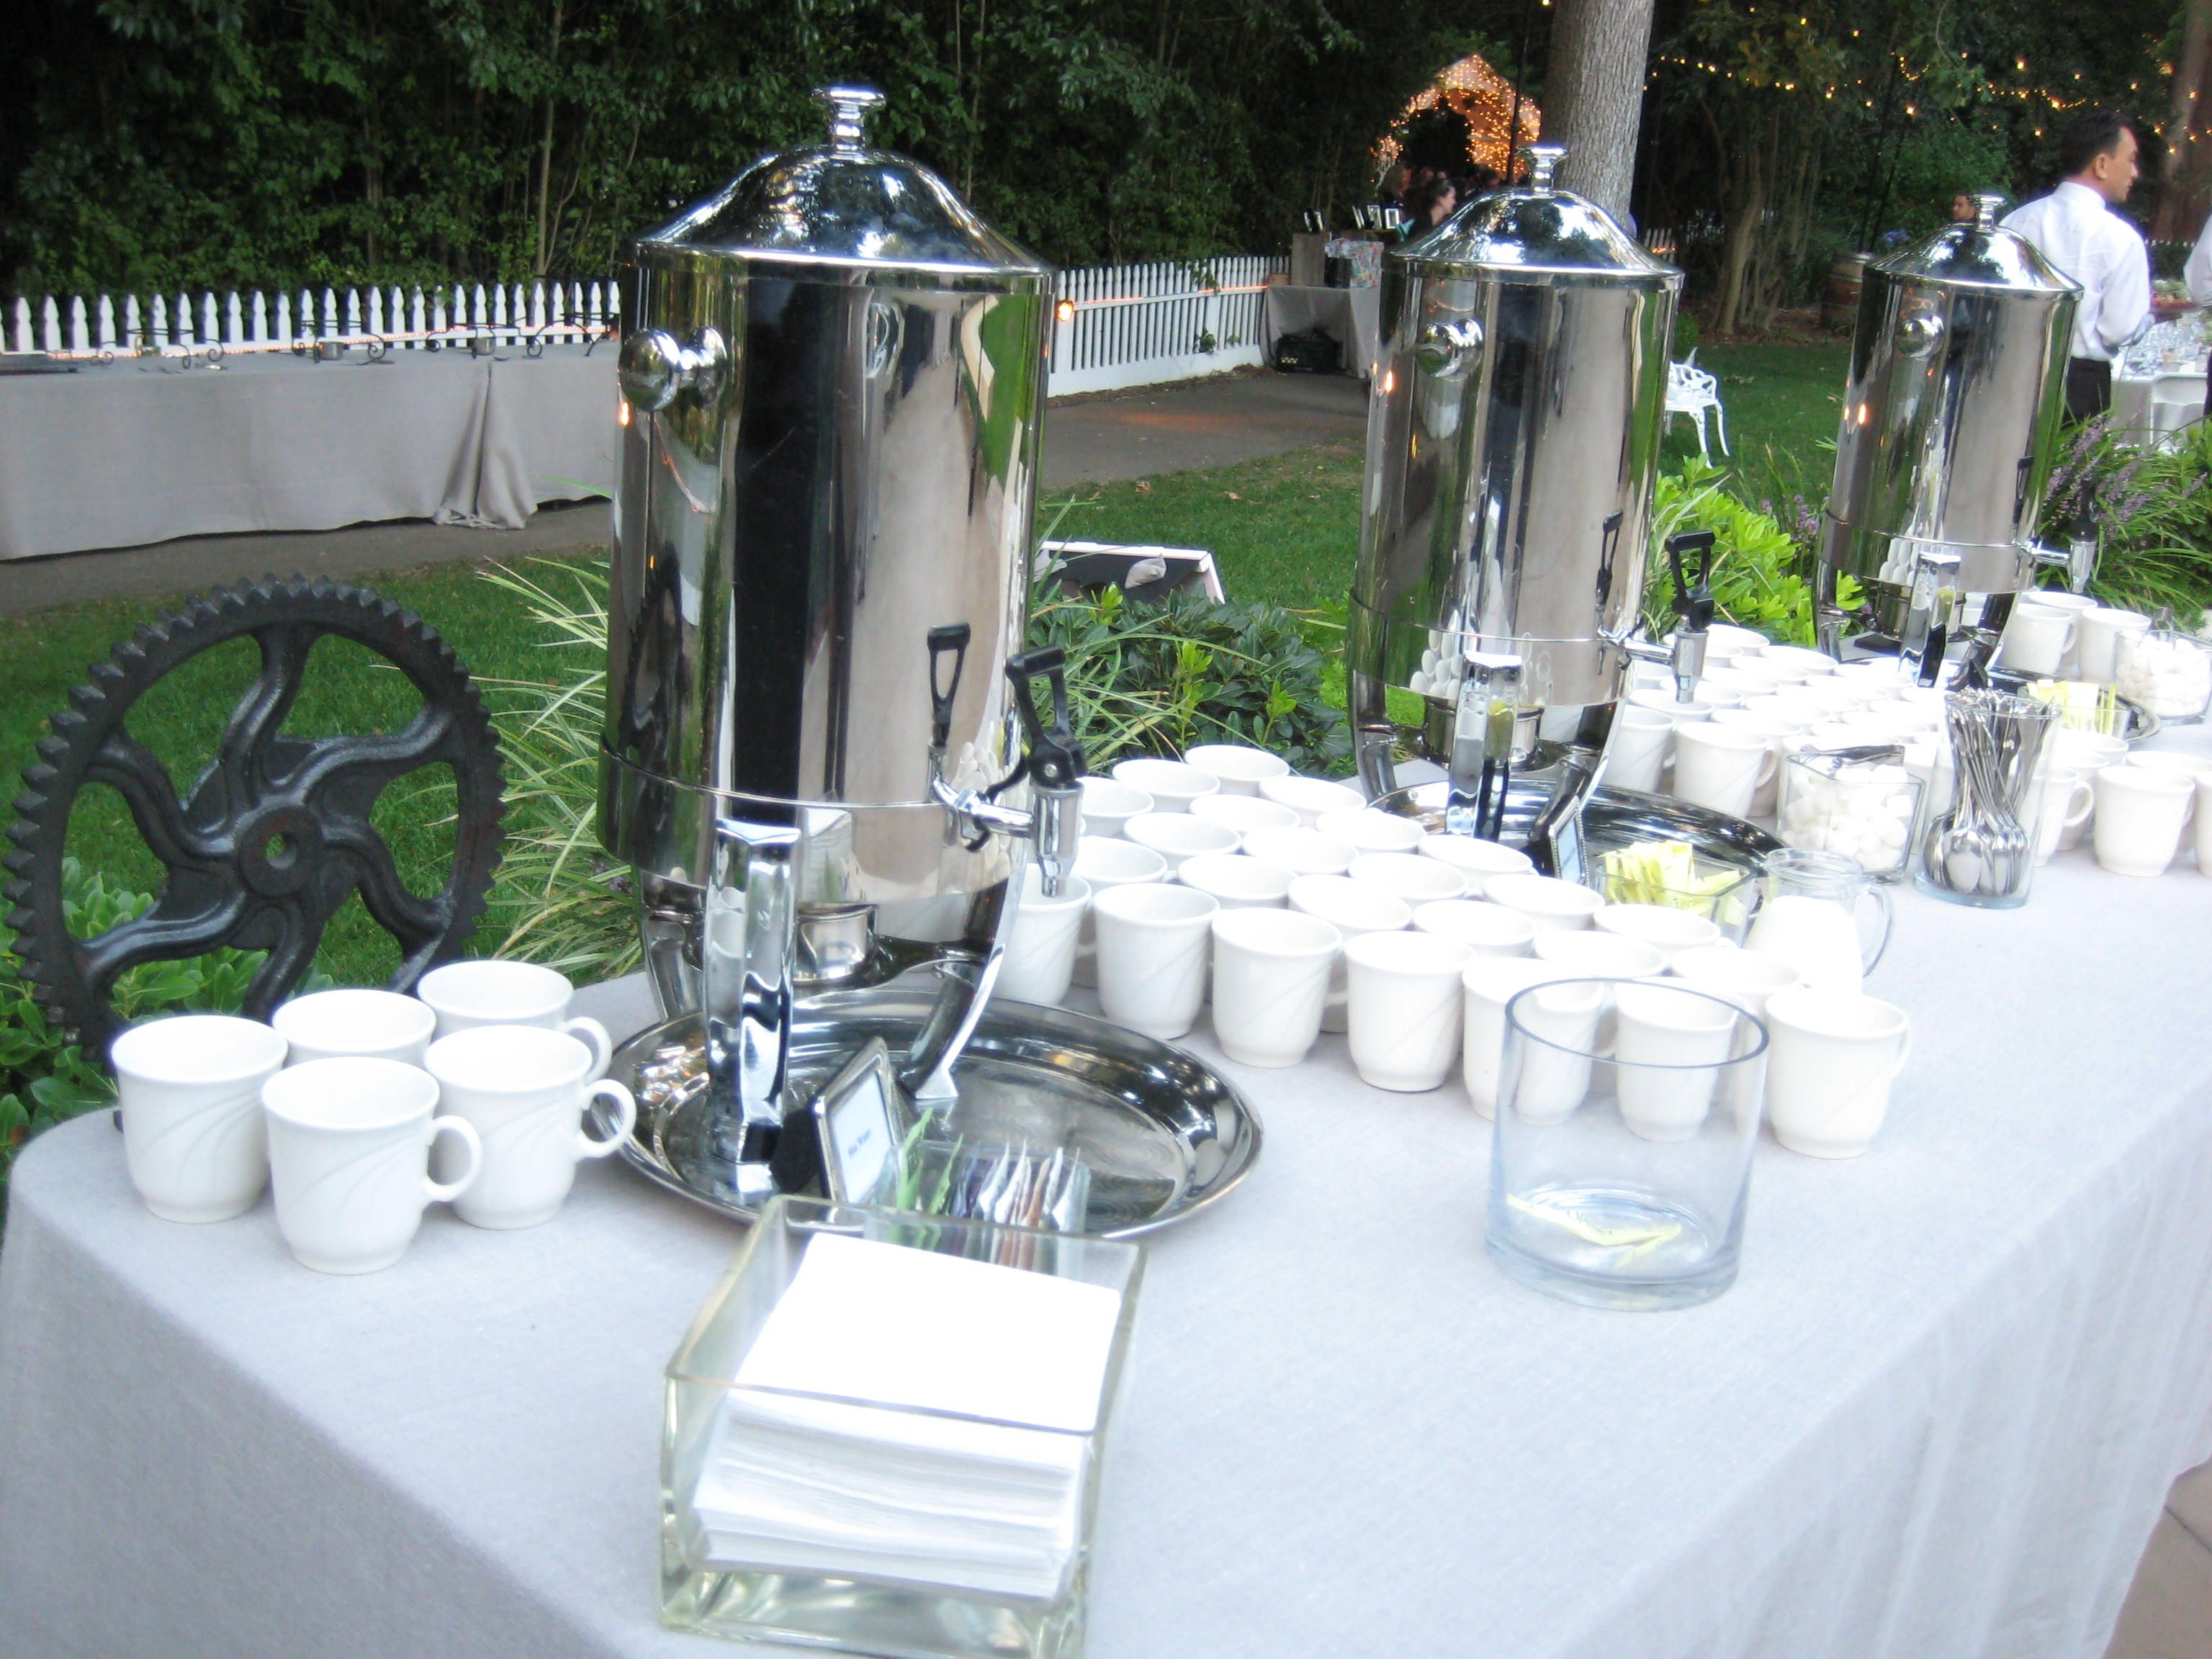 Coffee station overview. | Coffee break catering, Coffee ...